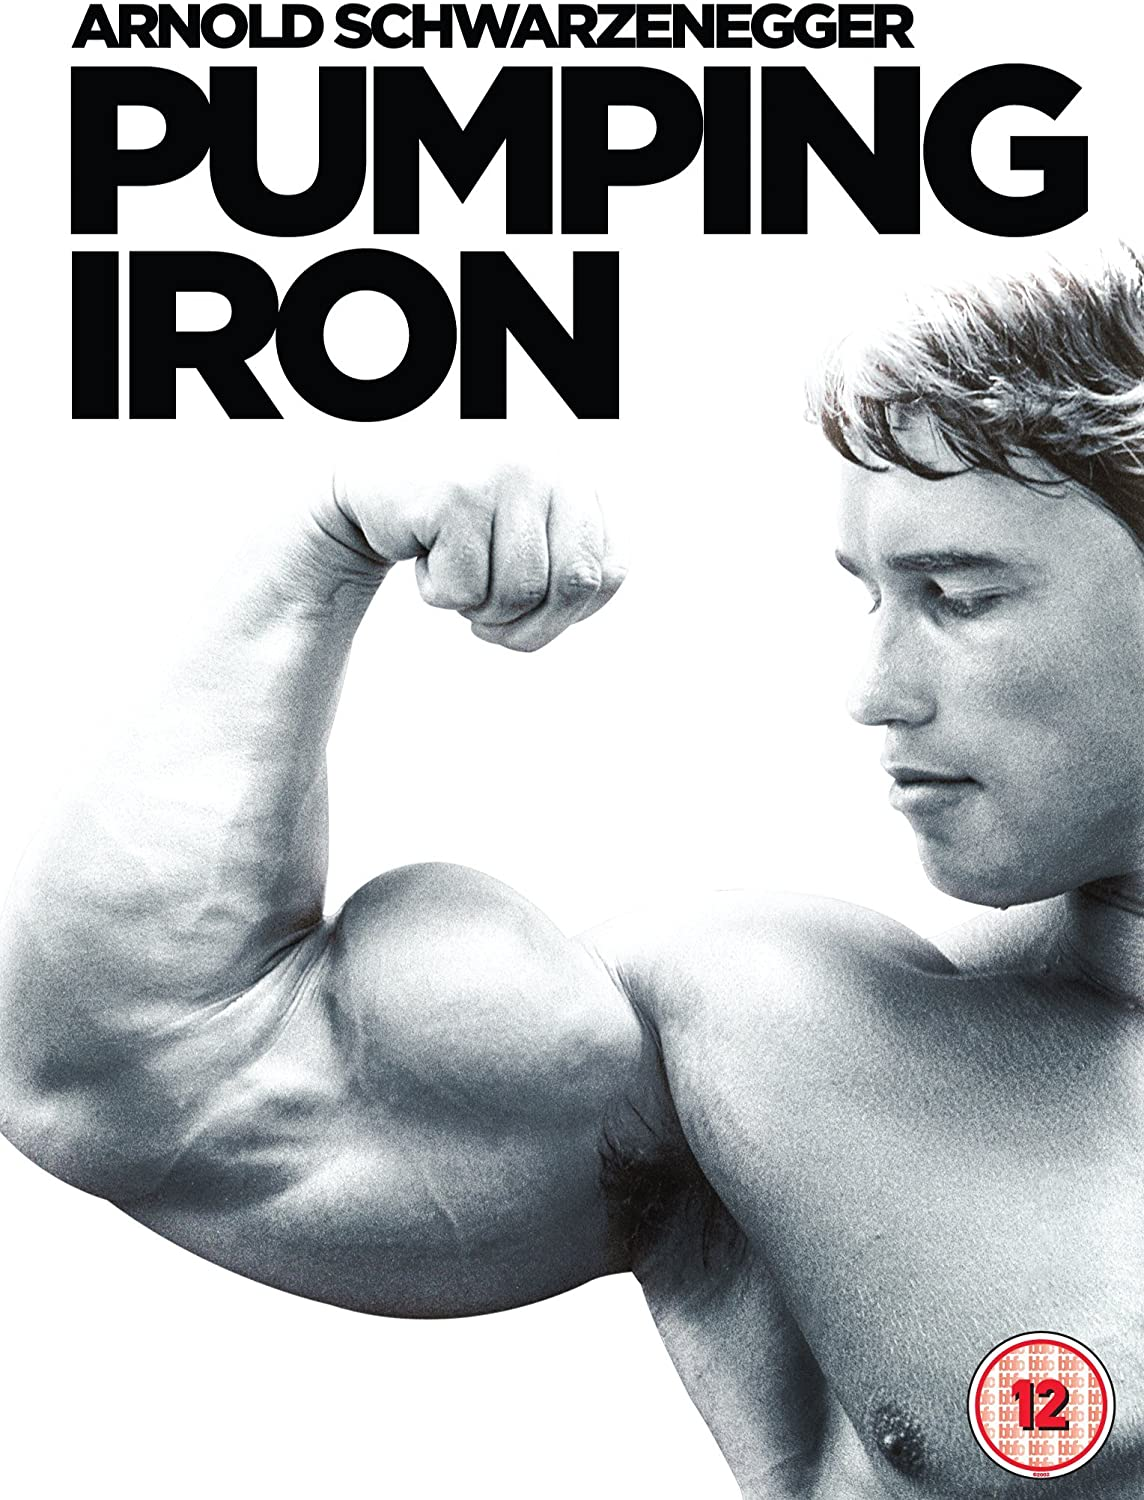 Pumping iron review